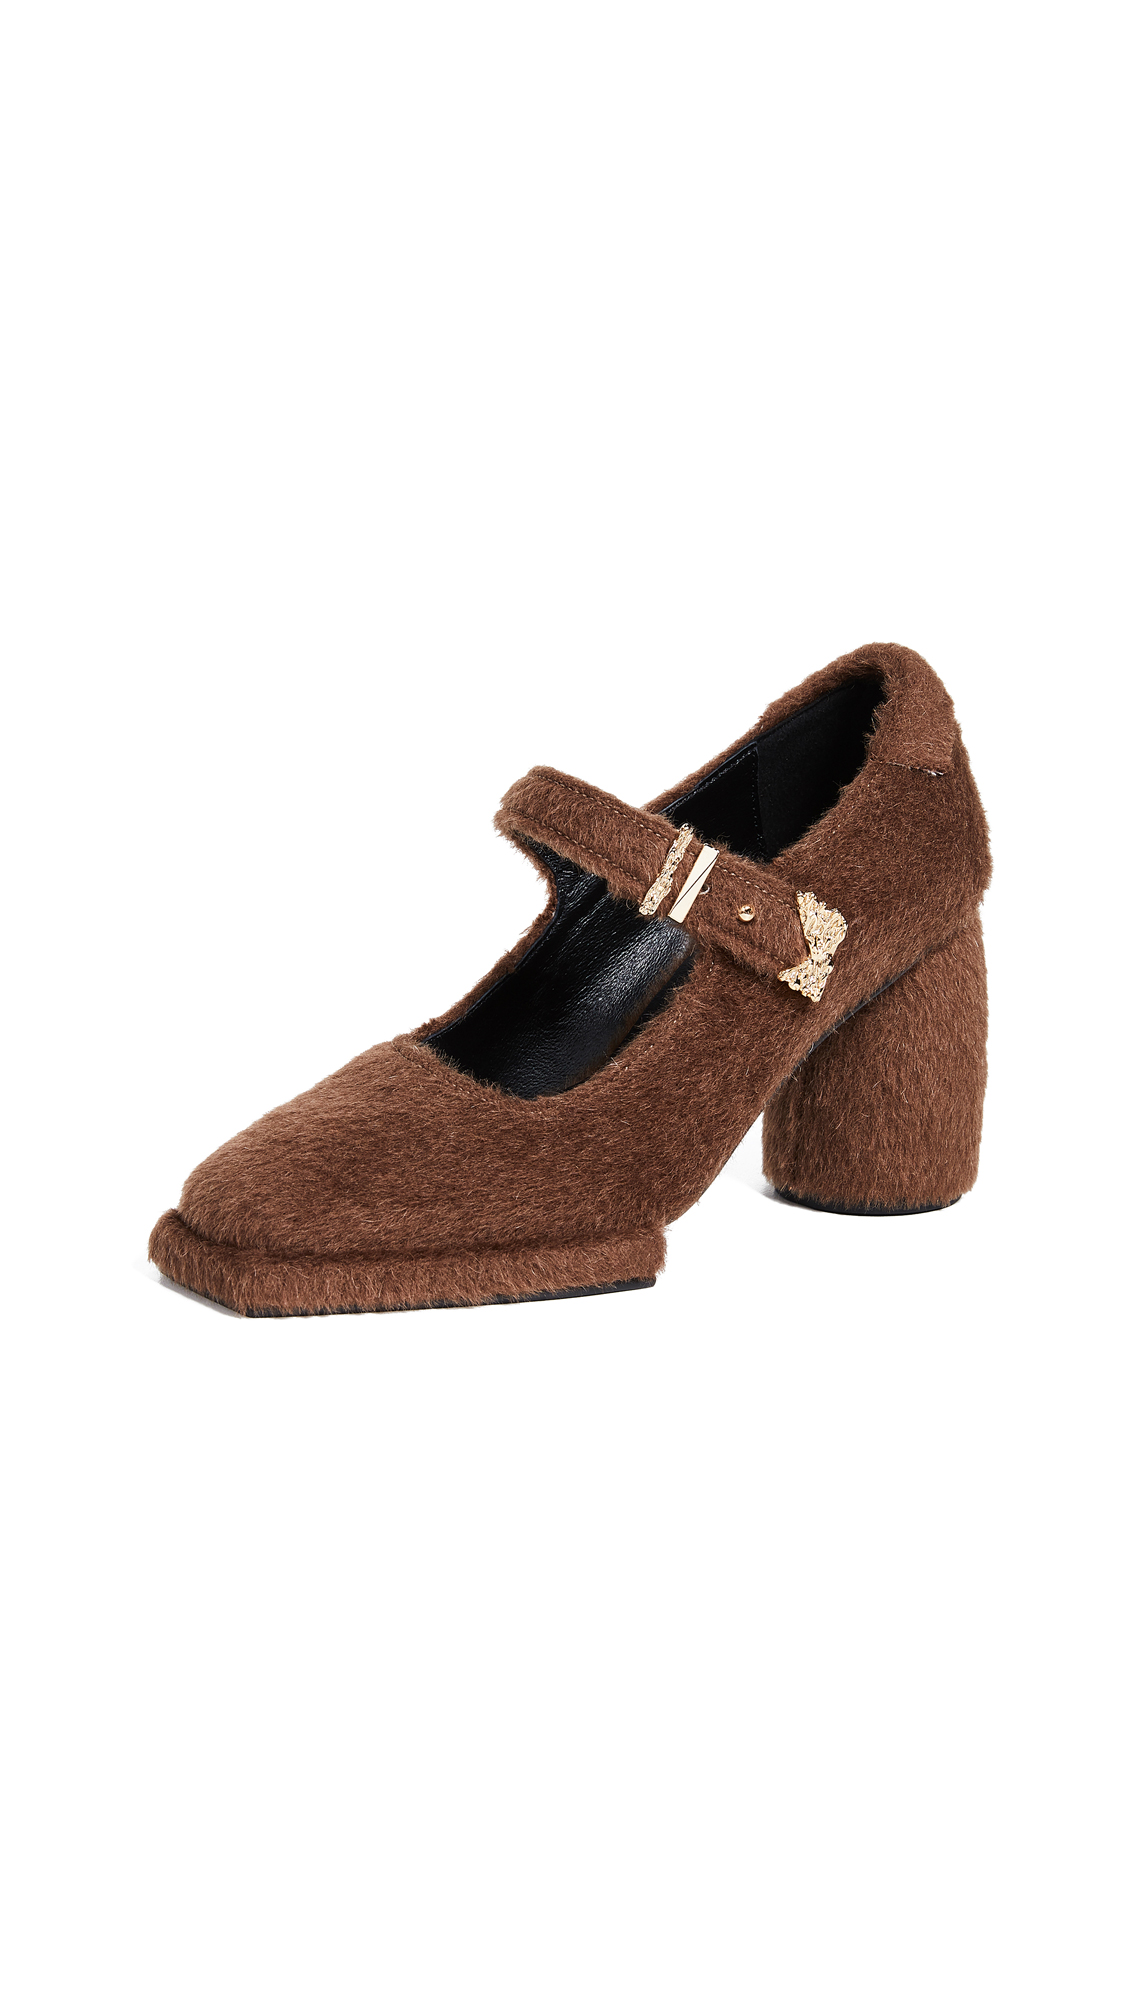 Reike Nen Square Mary Jane Pumps - Brown